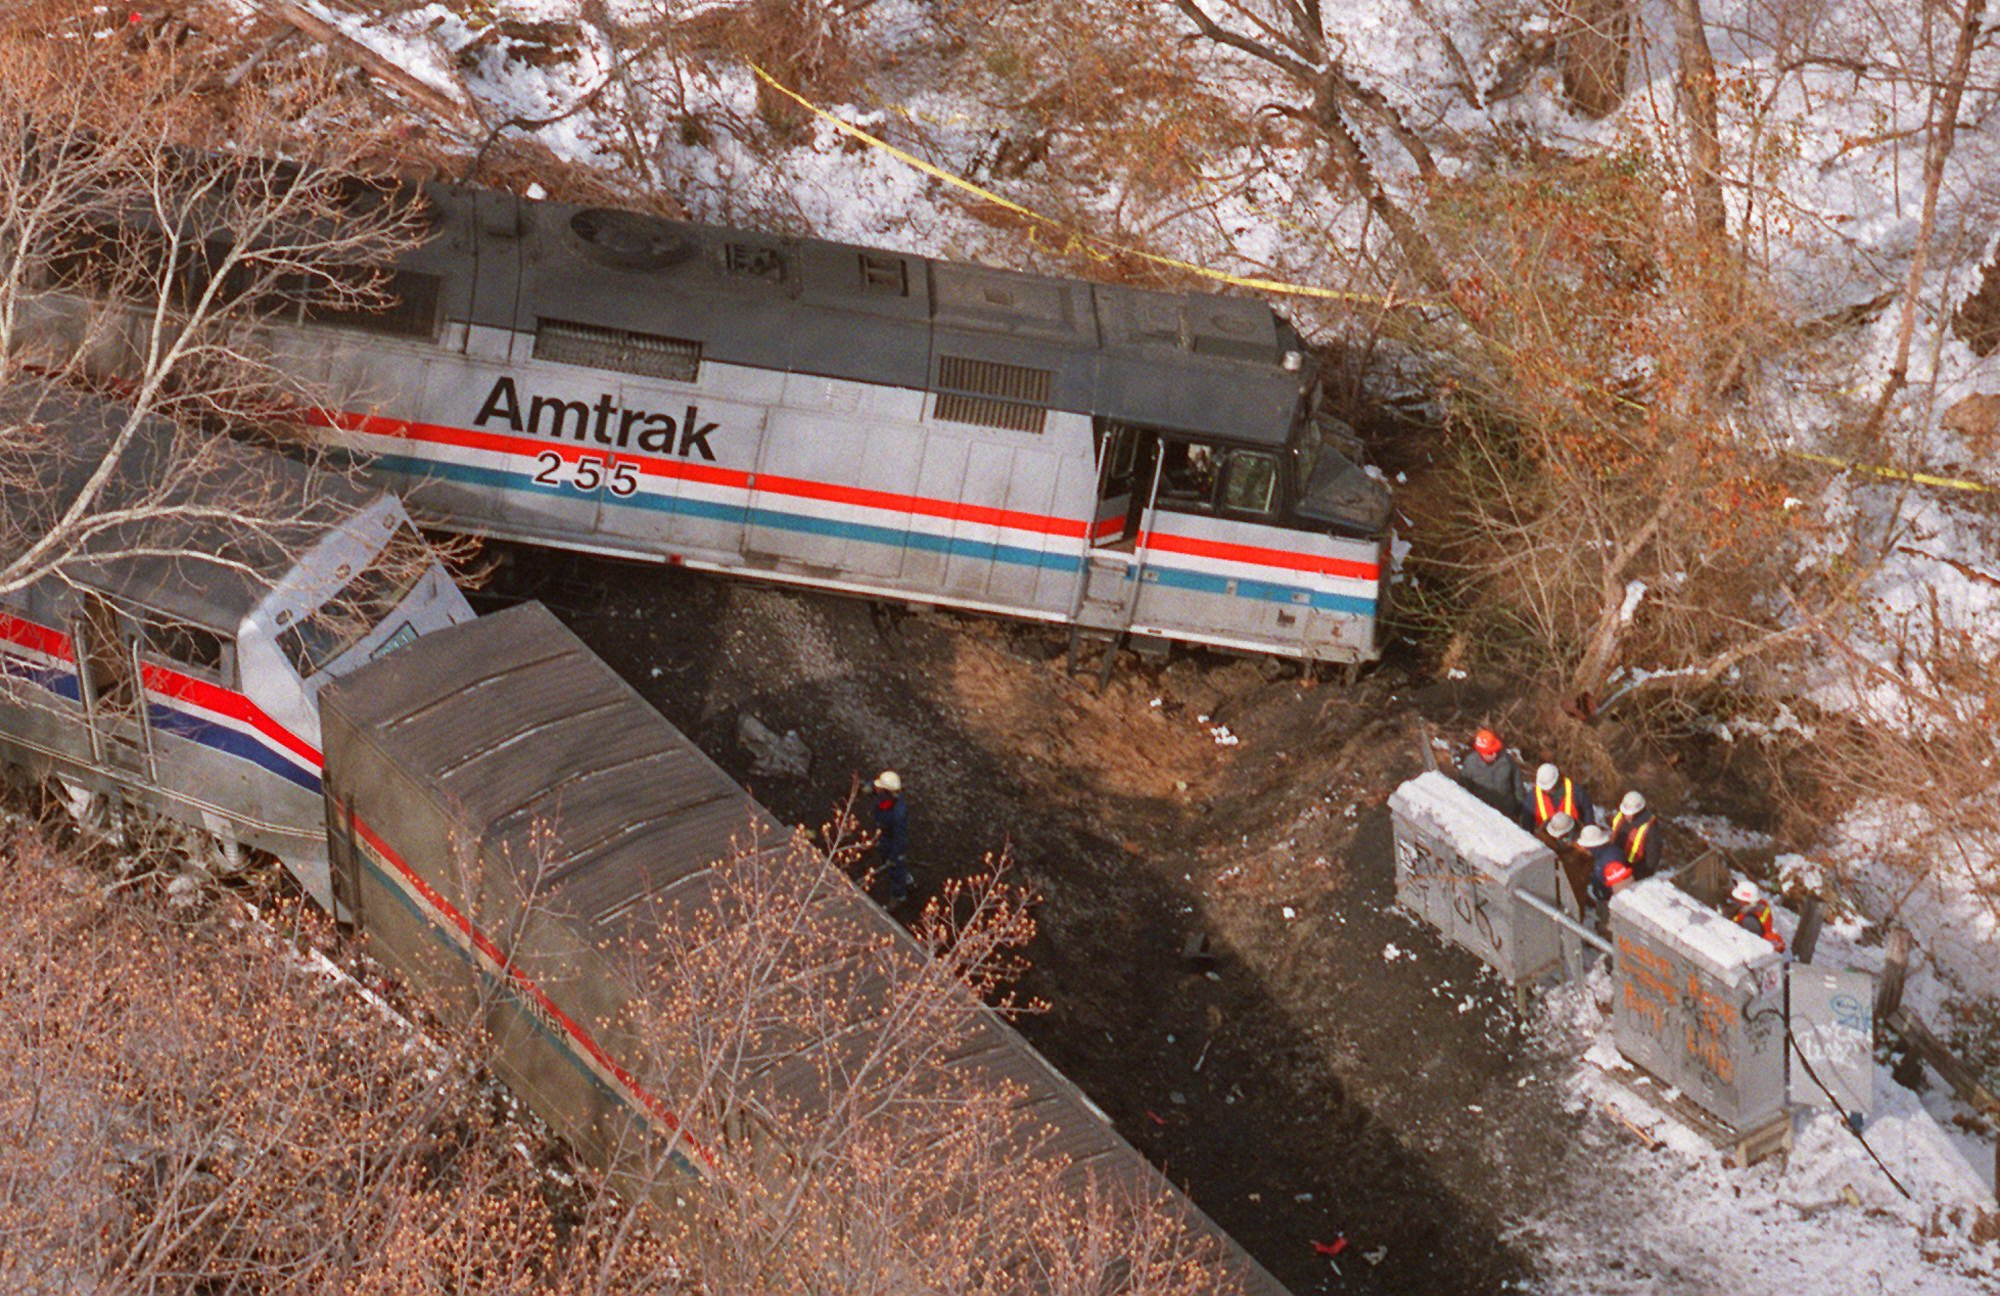 Retired Md. firefighters remember fatal Amtrak crash in Silver Spring, 20 years ago